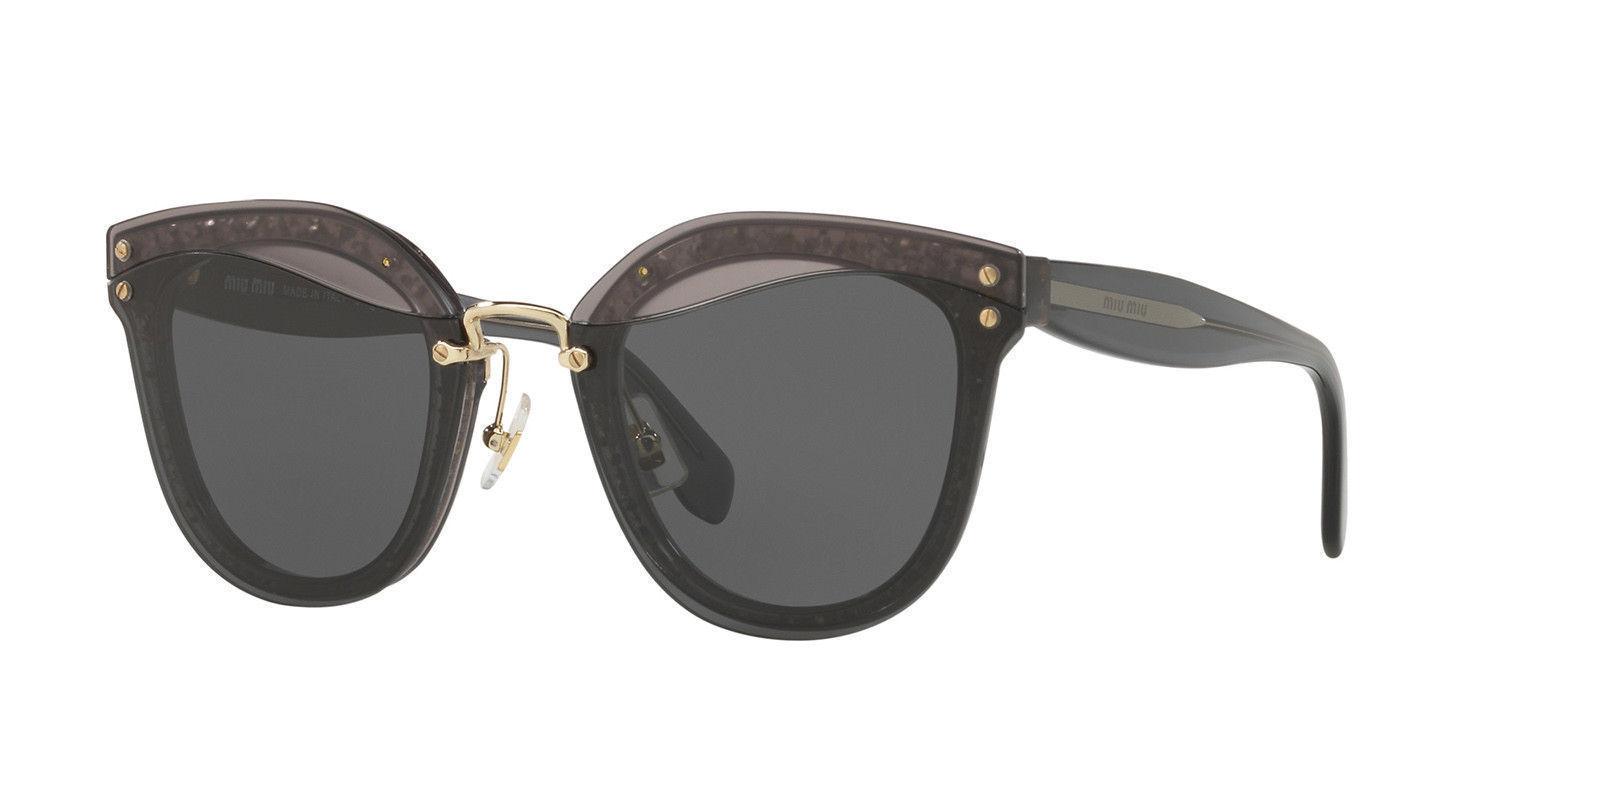 58f043785a9d Miu Miu Women s Sunglasses MU03TS UES5S0 and 34 similar items. S l1600